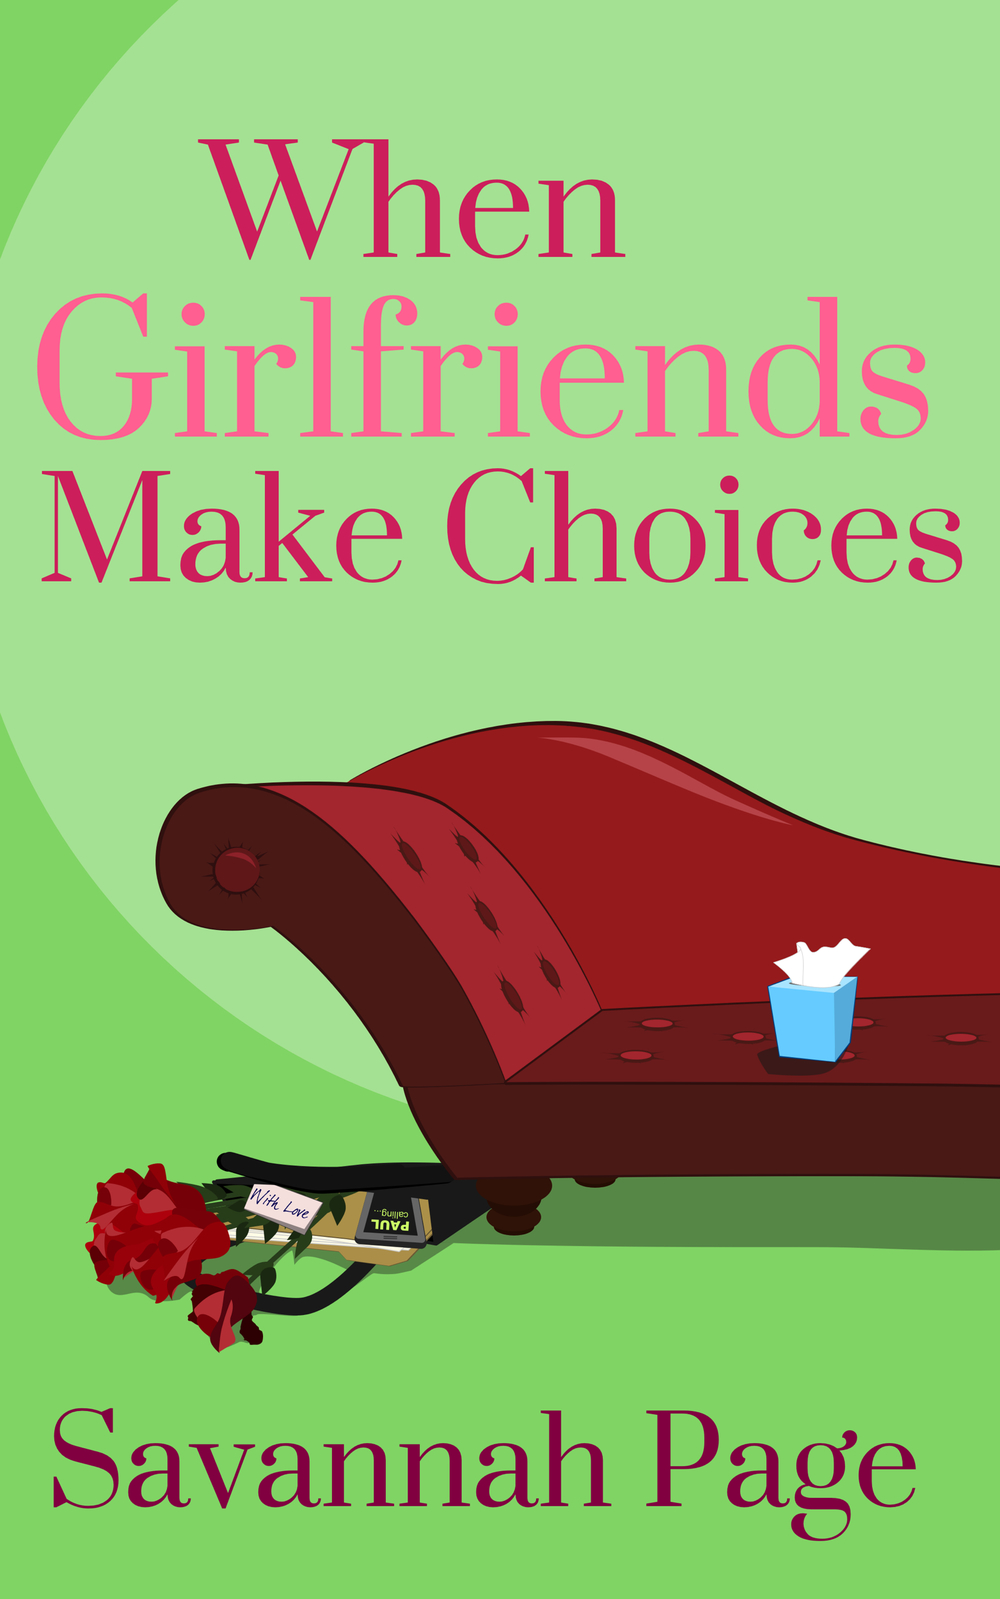 When Girlfriends Make Choices - EBOOK Kindle